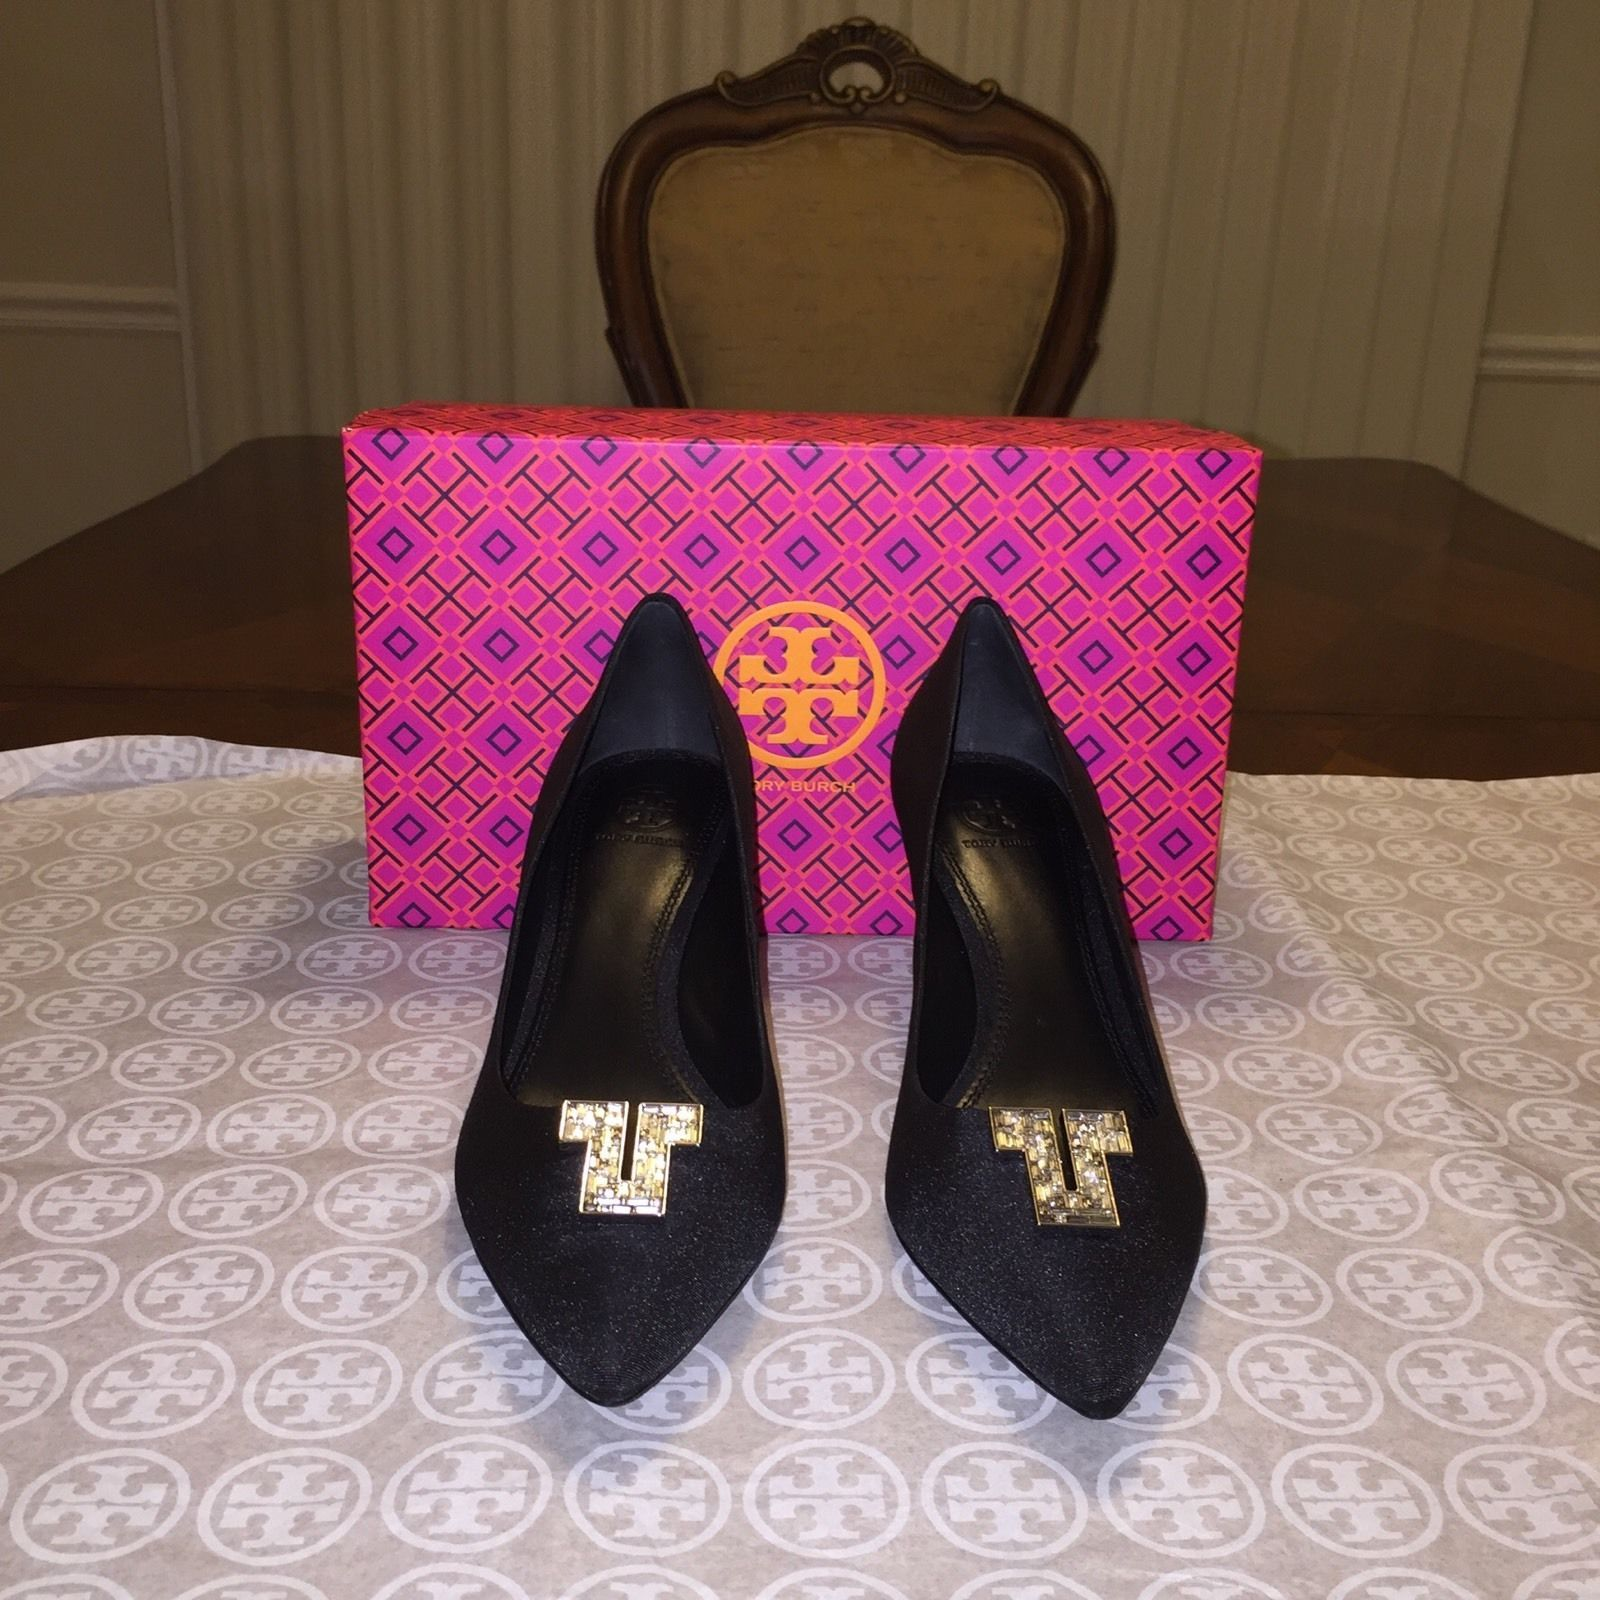 9c0b6e971da2 NIB Tory Burch Deco-T Pump Black Size 9.5 and 50 similar items